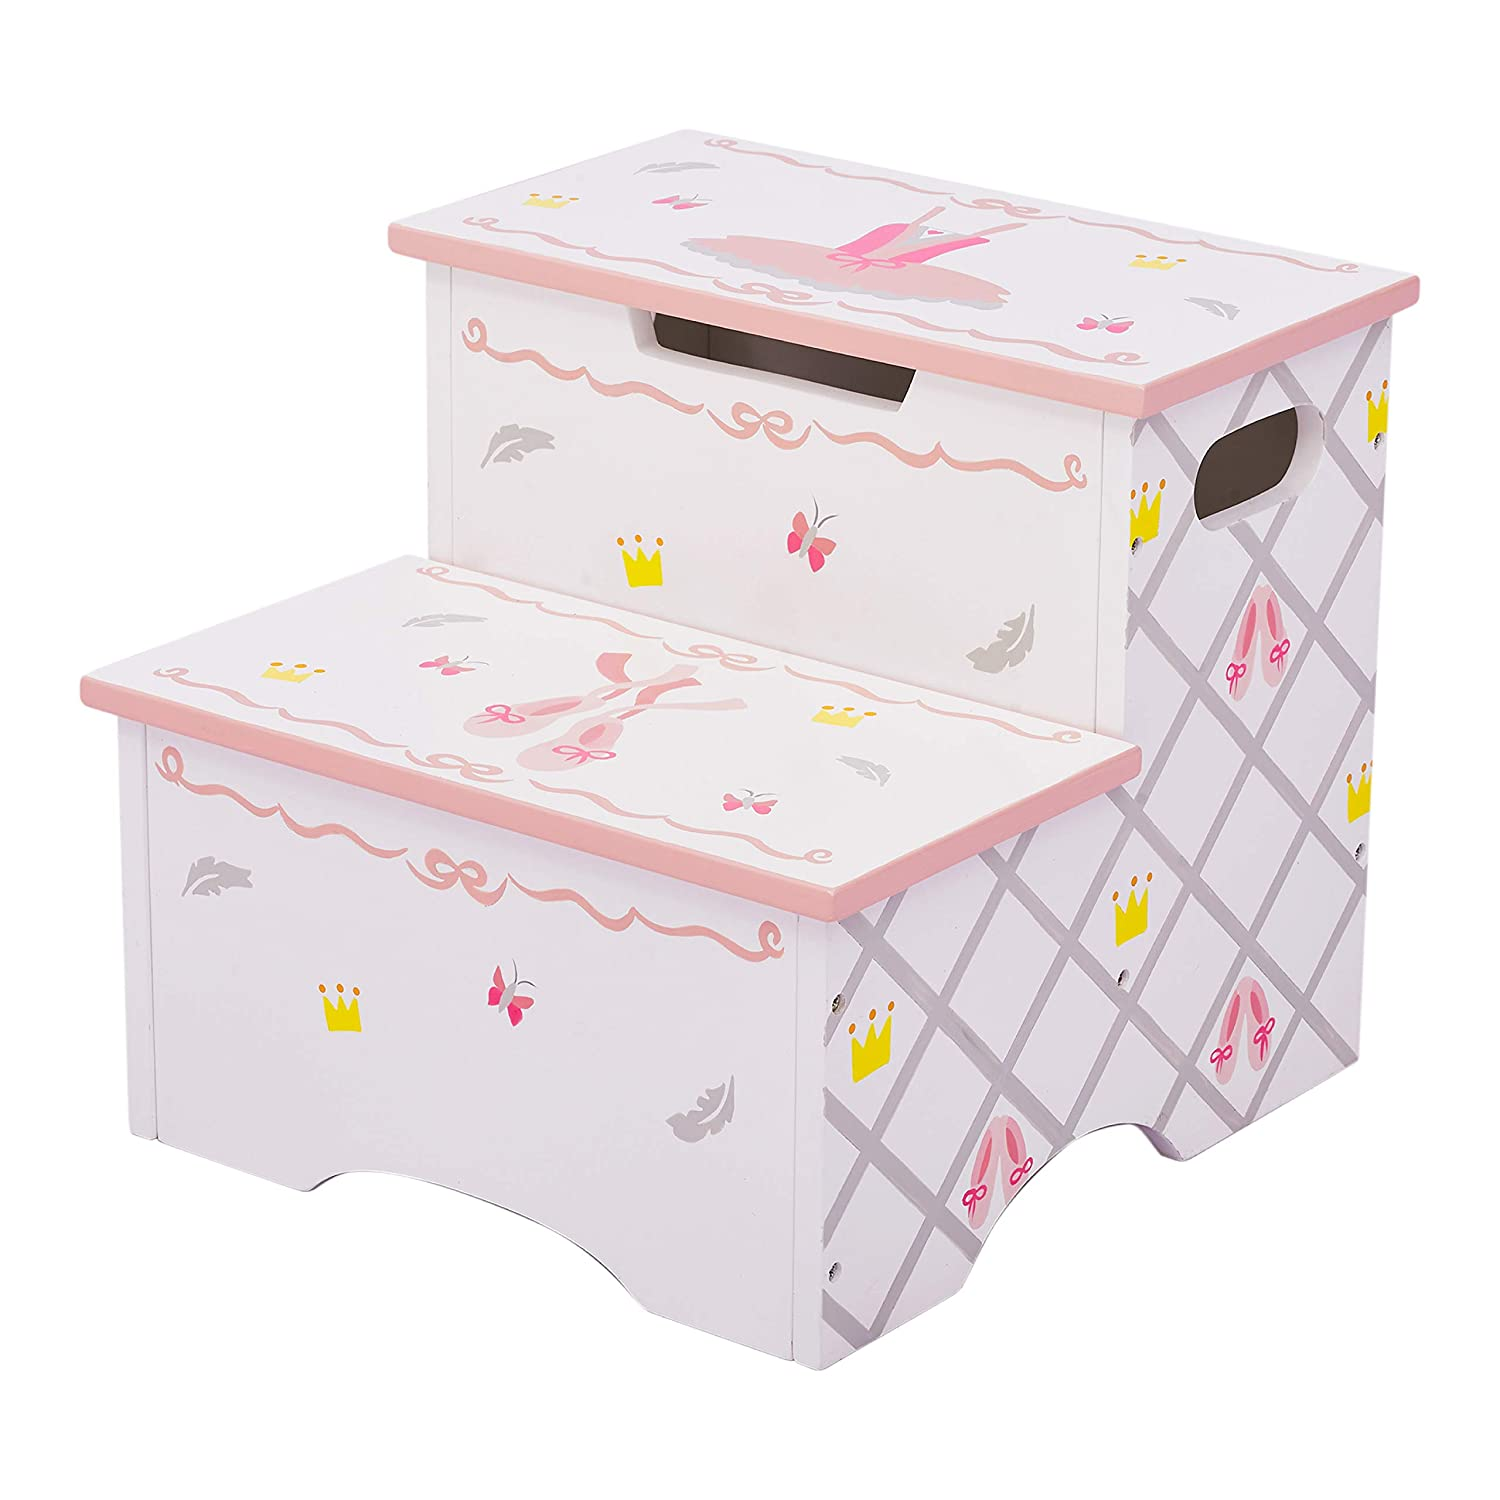 Fantasy Fields TD-12719A Swan Lake Ballerina Step Stool, Hand-Painted Kids Wooden Furniture, White/Pink